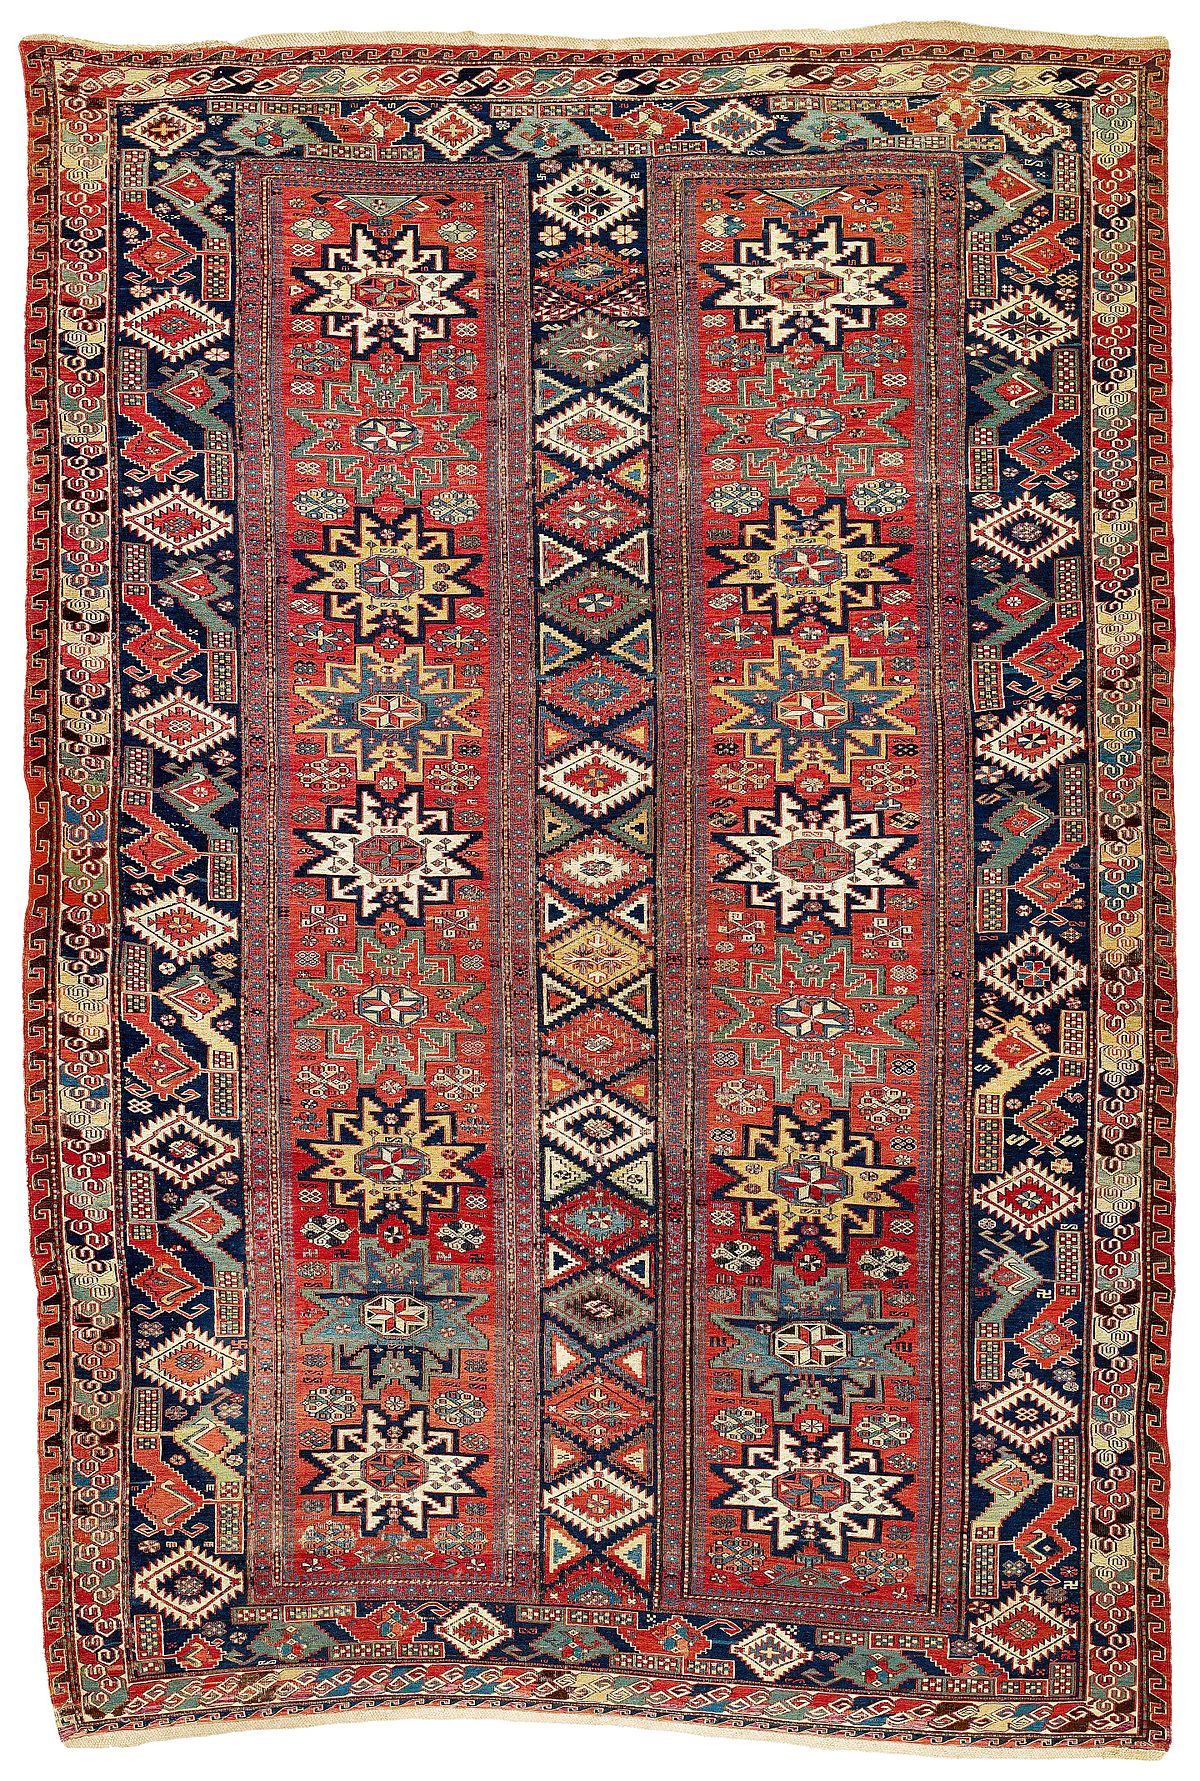 Caucasian Carpets And Rugs Wikipedia